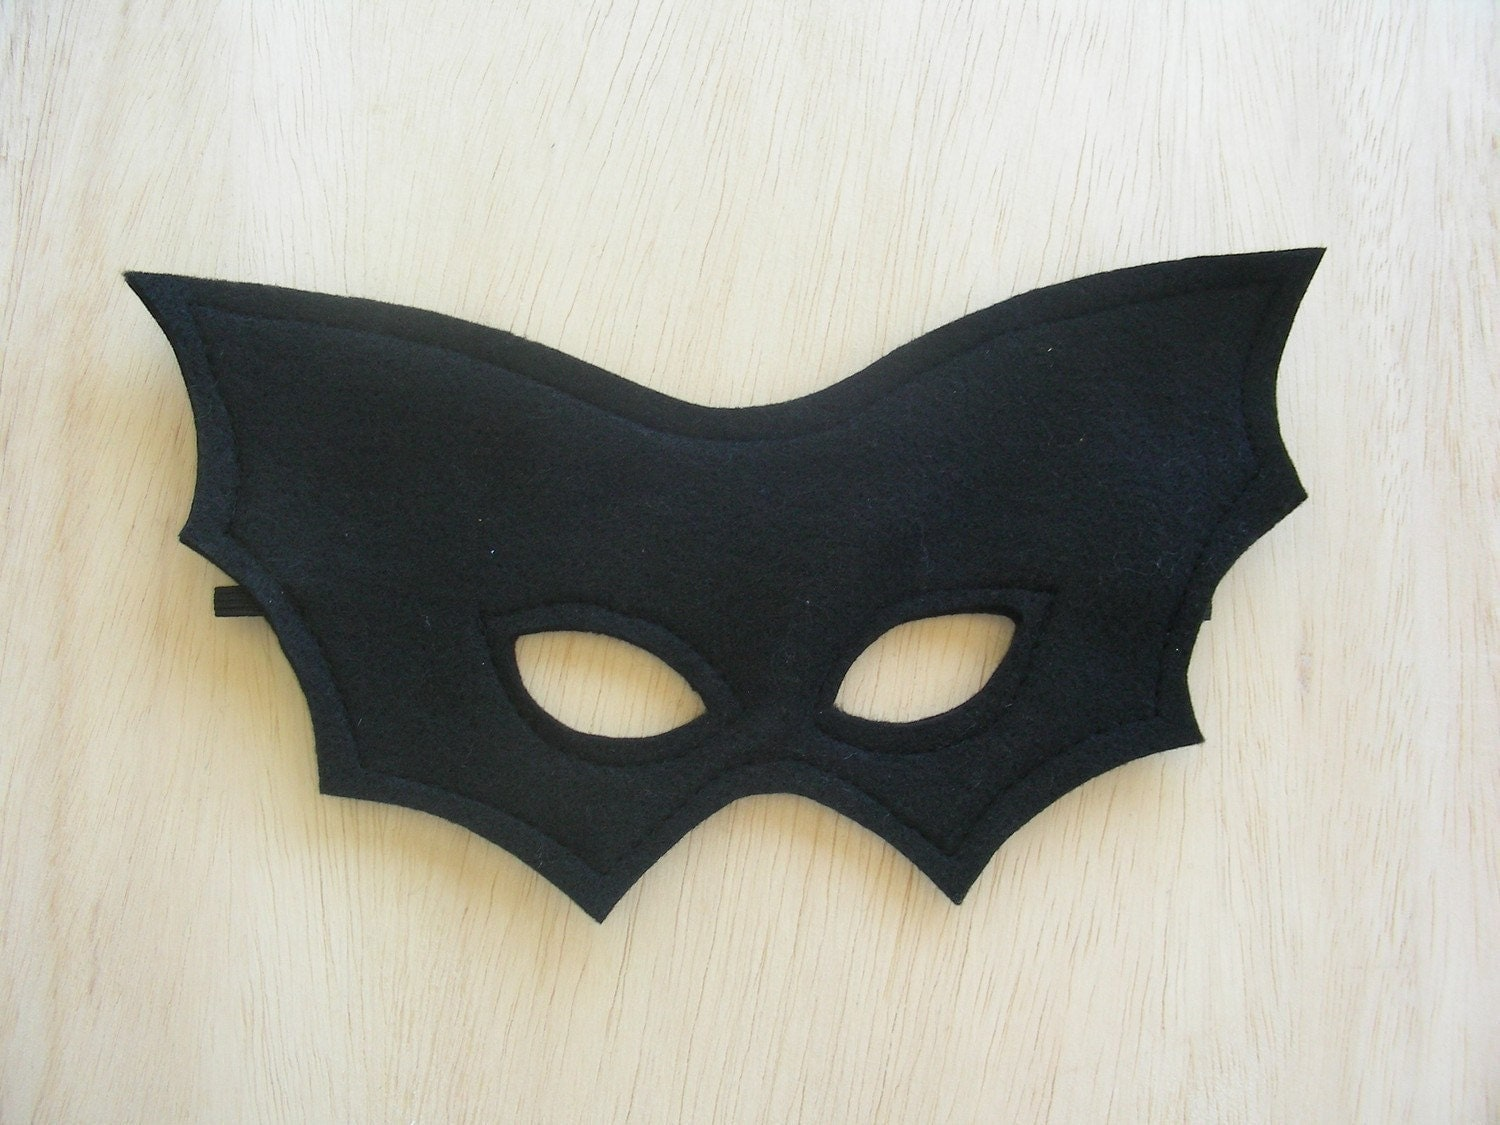 Batwoman mask template - photo#9